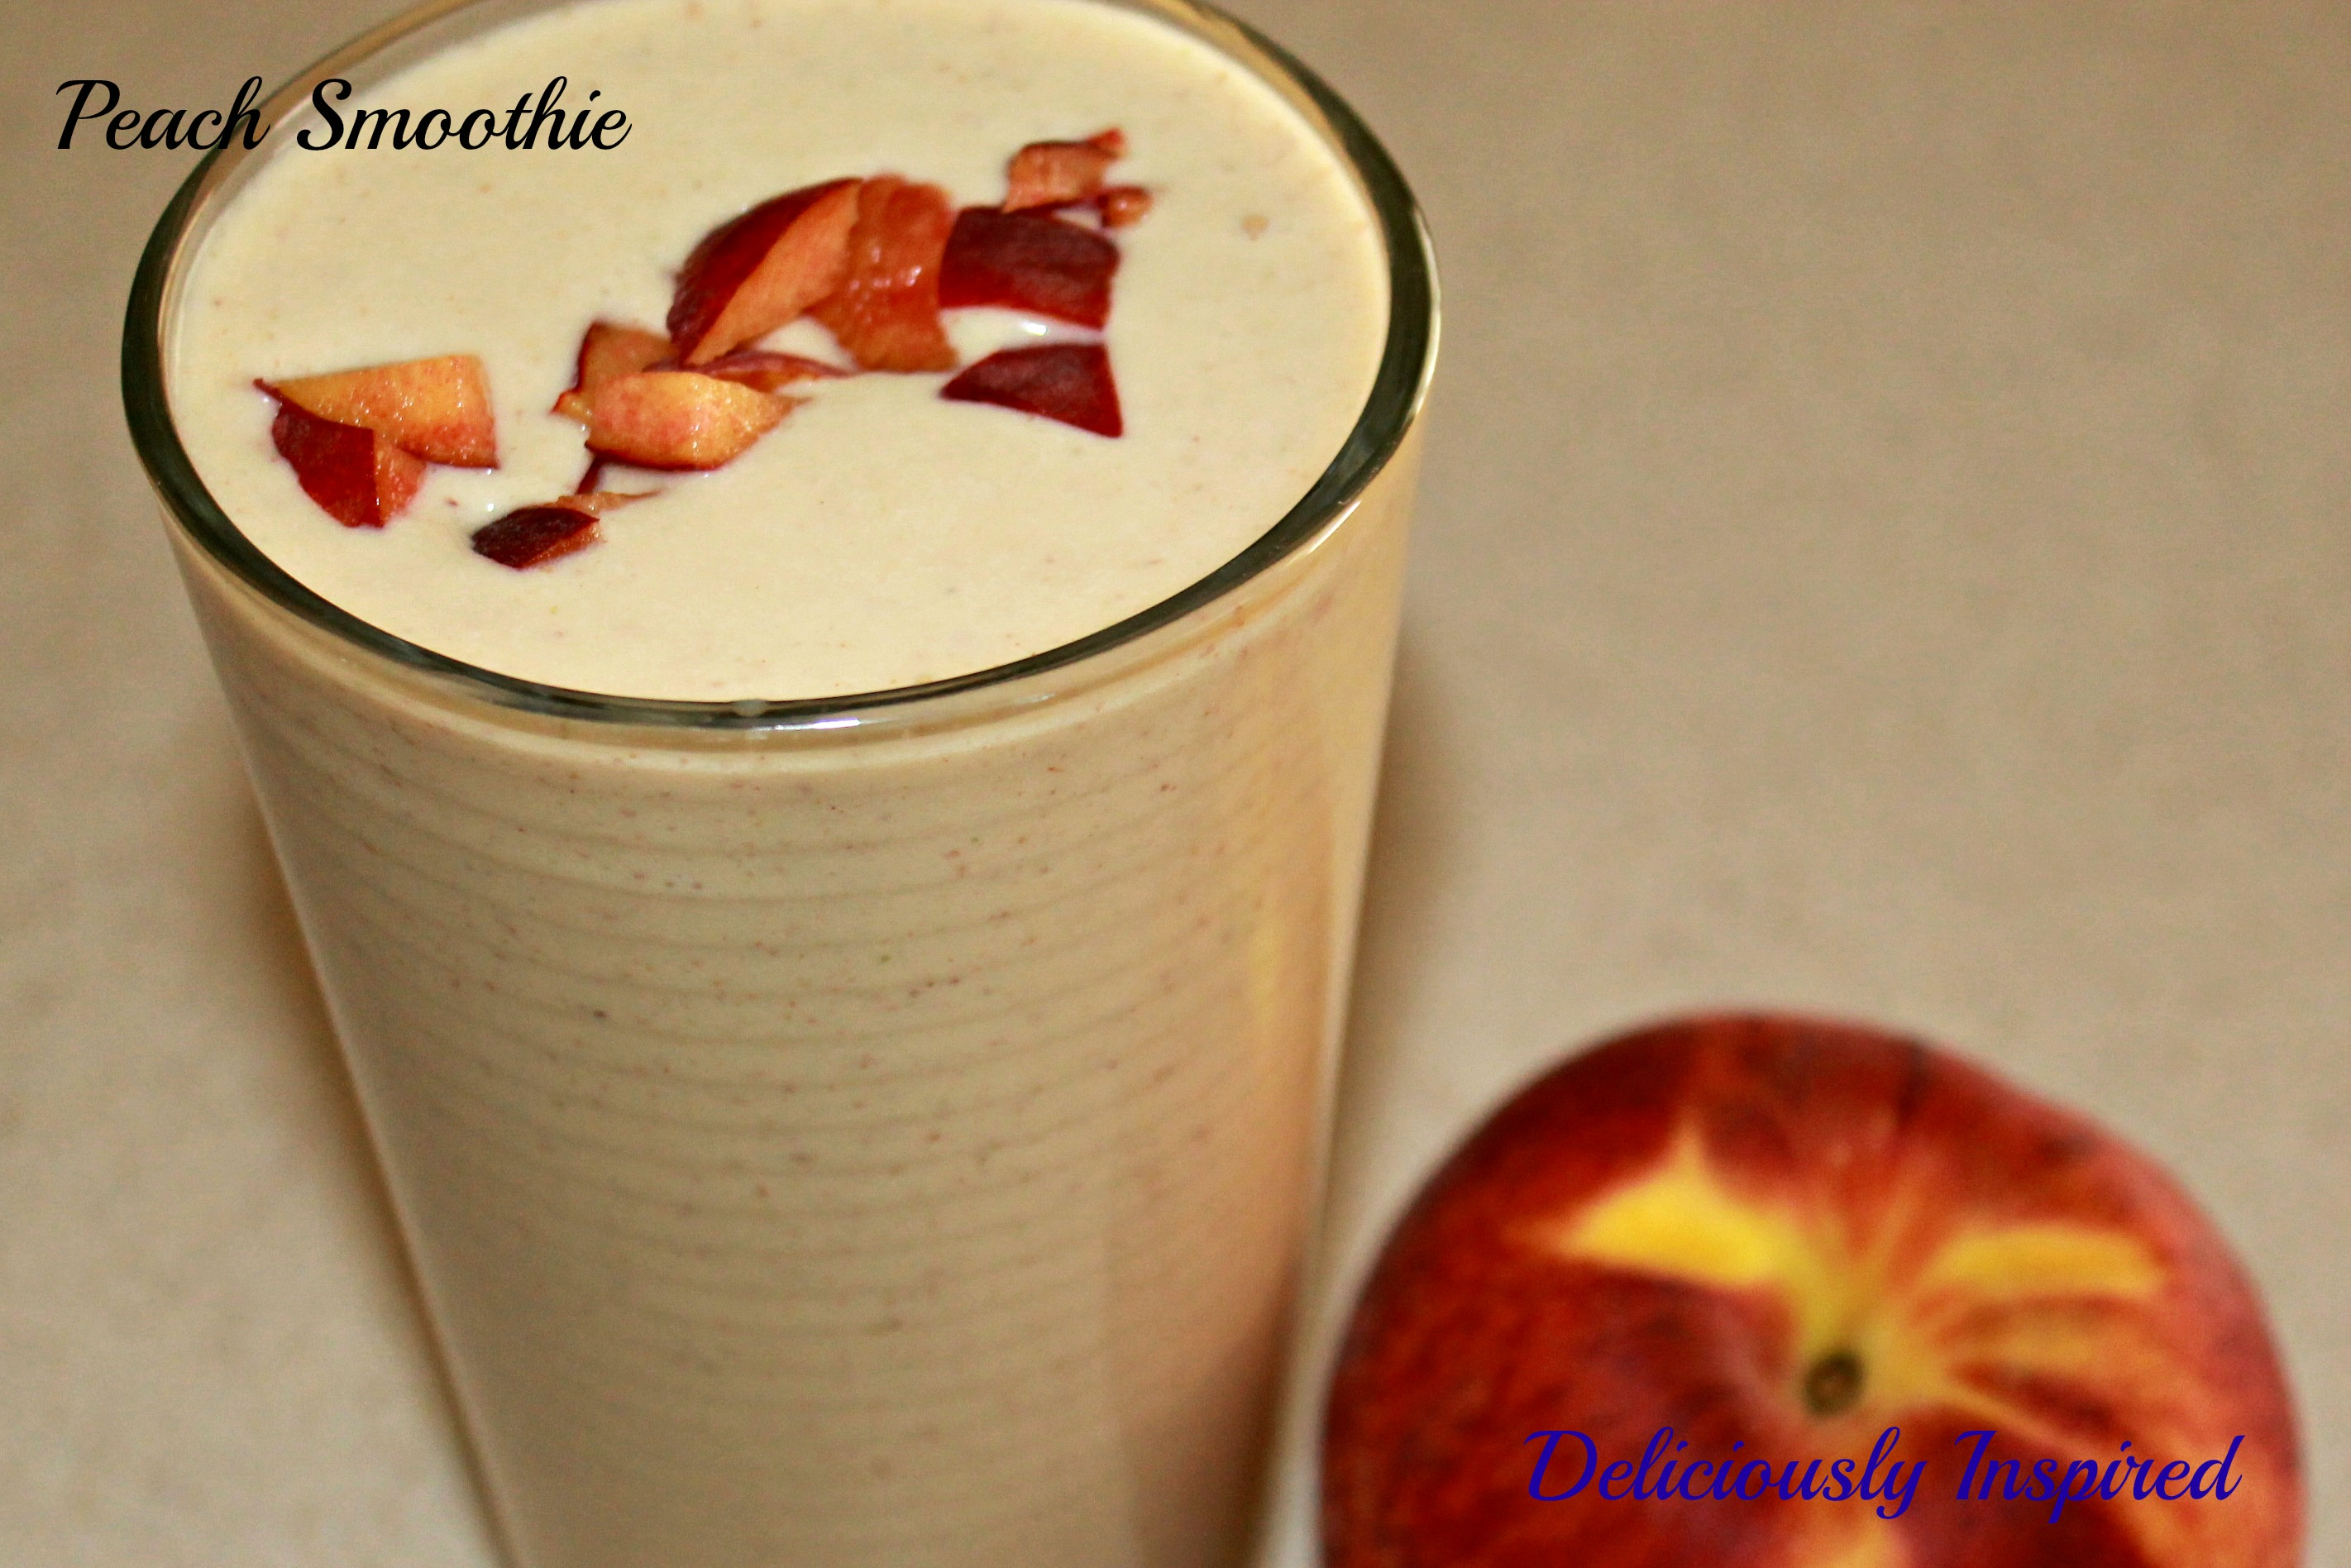 Peachy Smoothie